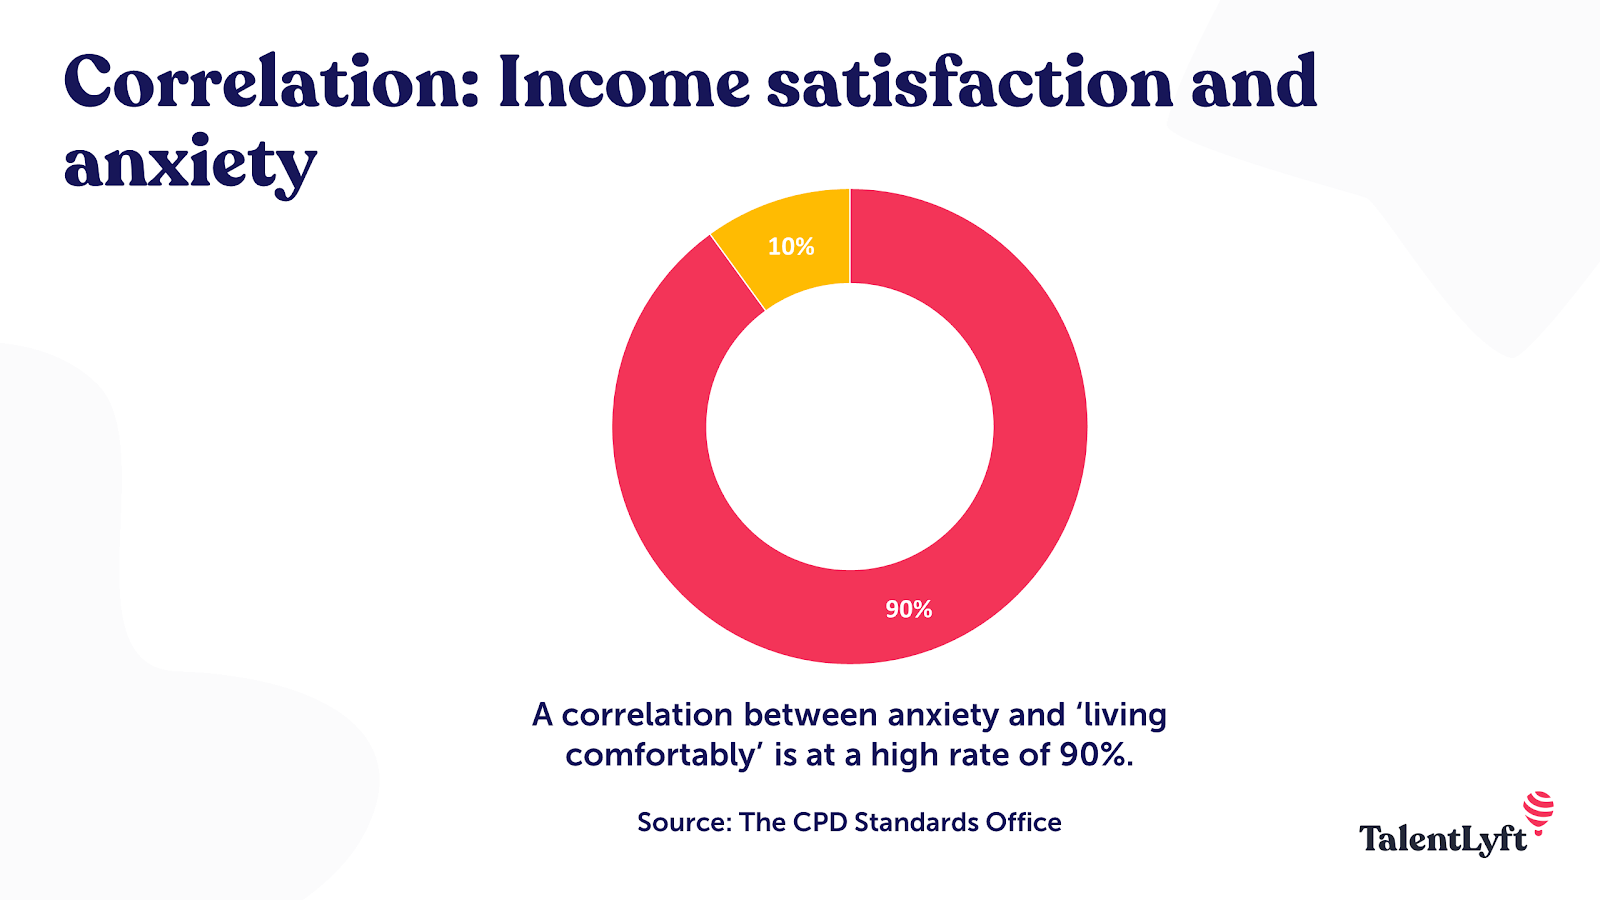 Correlation between income satisfaction and anxiety